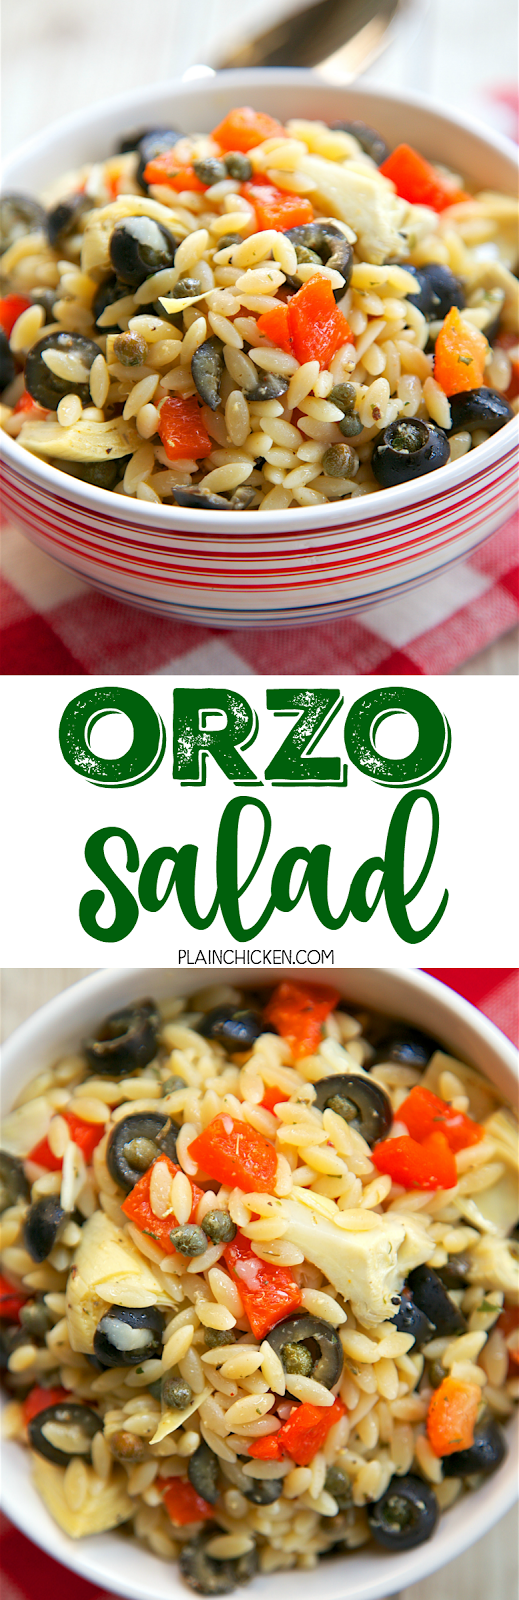 Orzo Salad - orzo, roasted red peppers, artichoke hearts, capers, black olives tossed in a quick lemon olive oil dressing. Can serve warm or cold. This is SO good!! It gets better the longer it sits. Great for cookouts and tailgates!